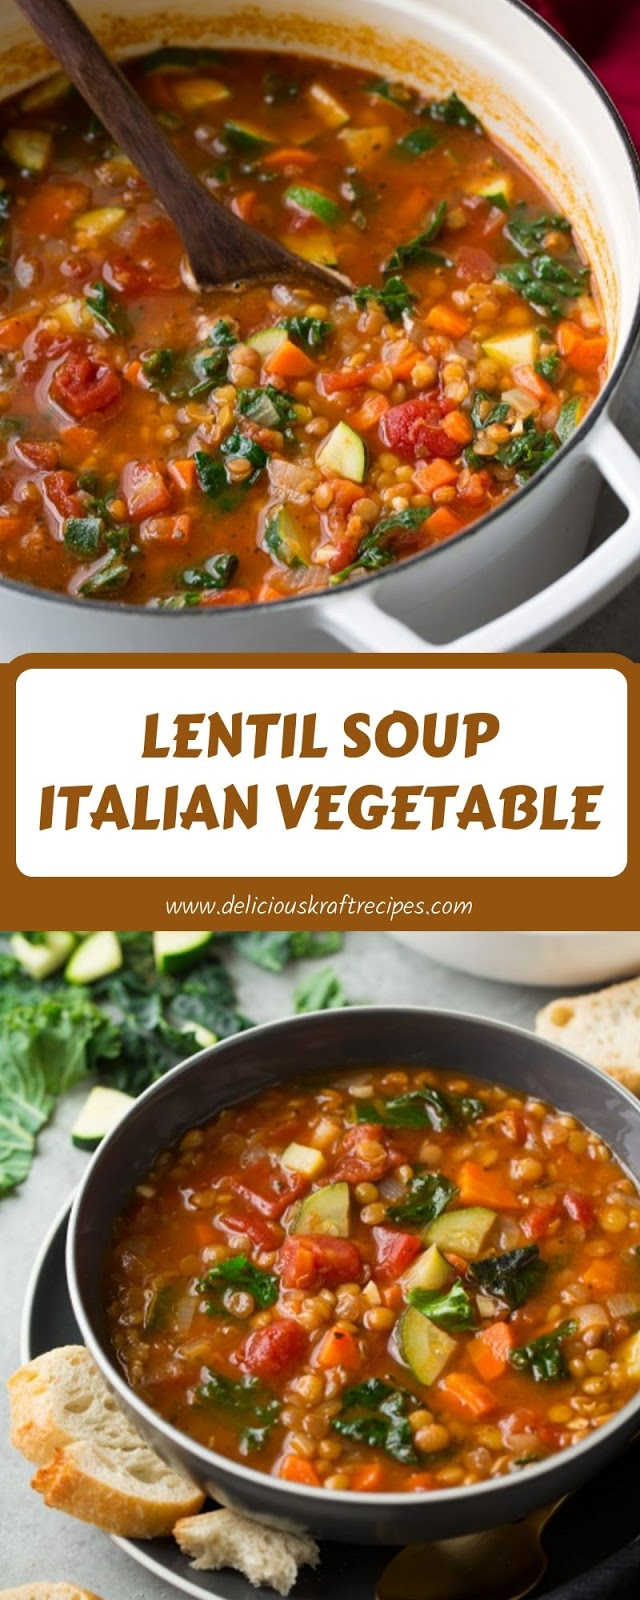 LENTIL SOUP ITALIAN VEGETABLE